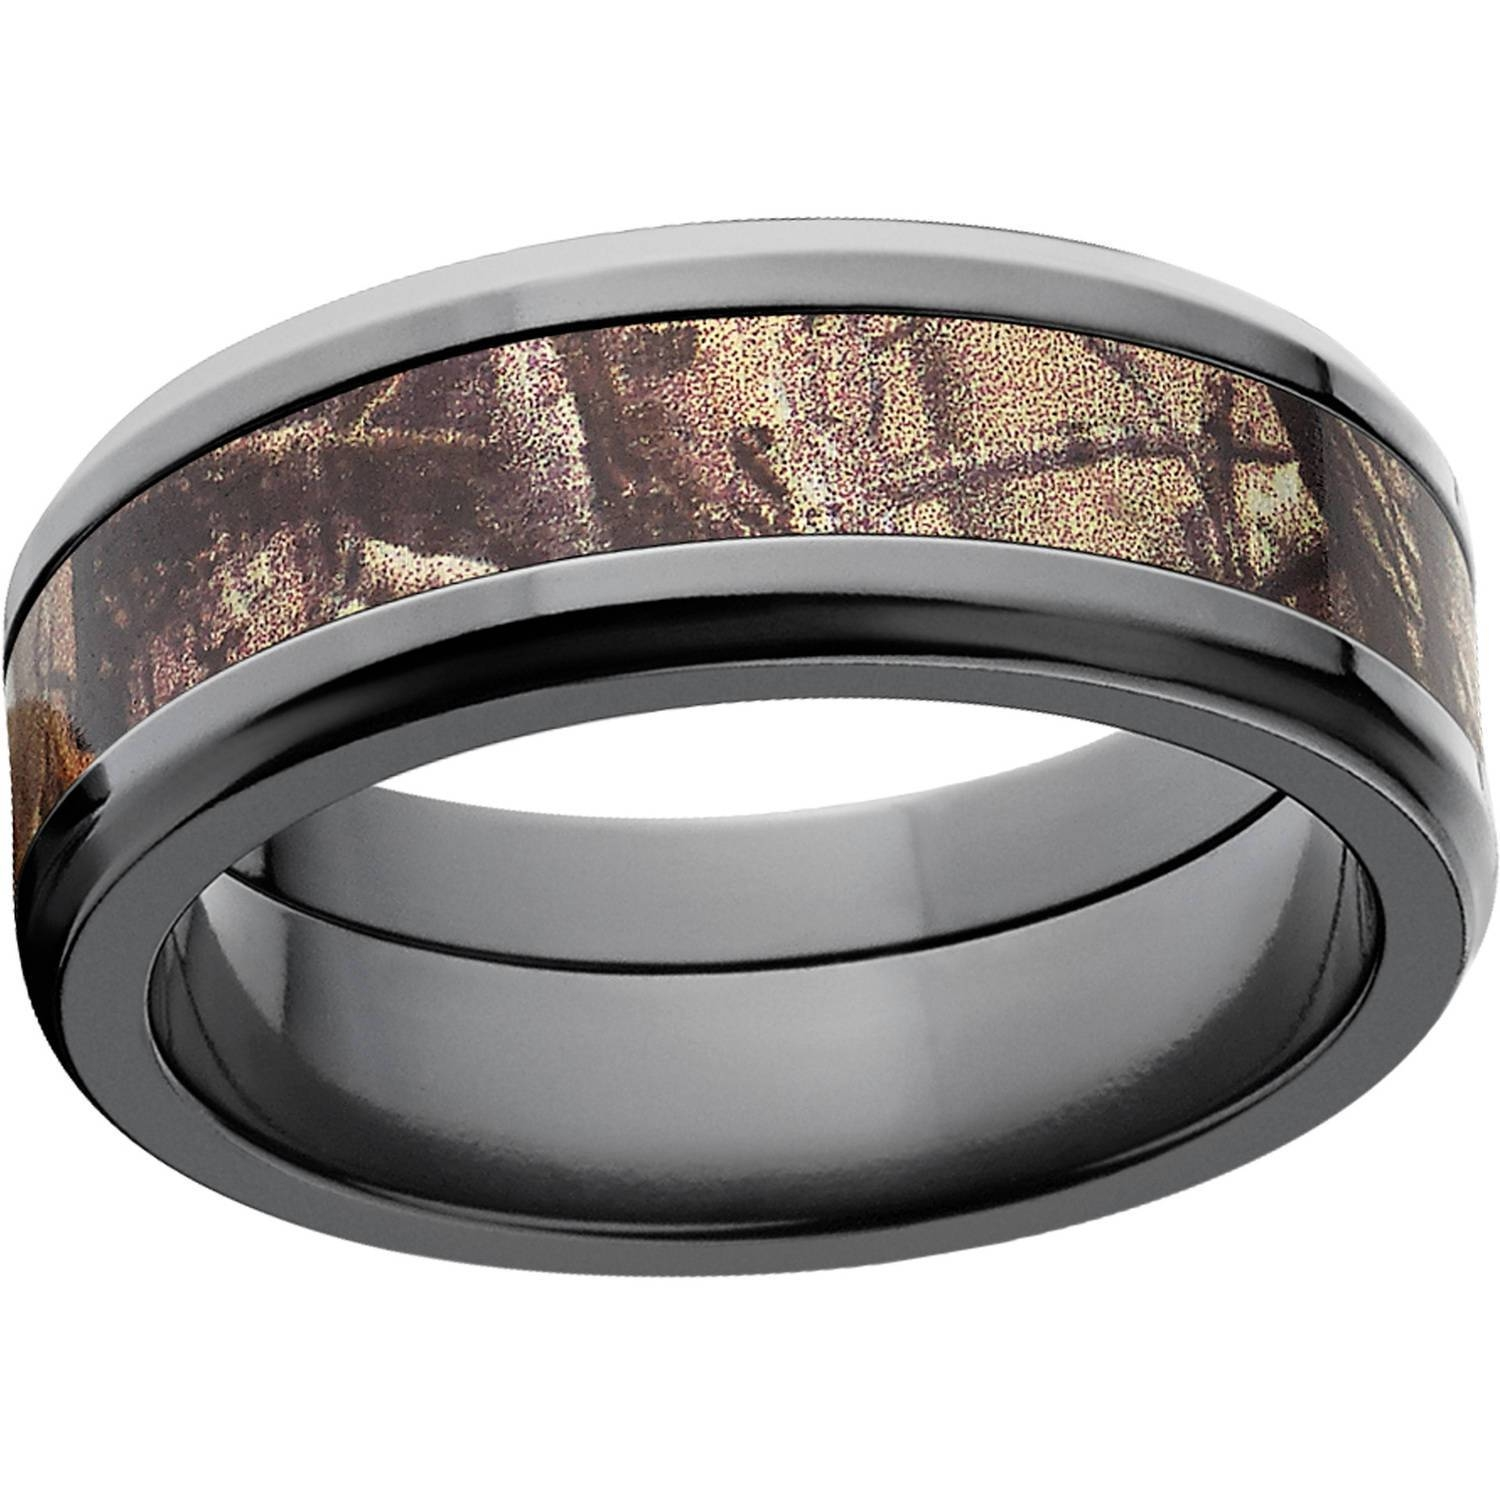 Realtree Ap Men's Camo 8Mm Black Zirconium Wedding Band – Walmart Regarding Men's Wedding Bands At Walmart (View 14 of 15)